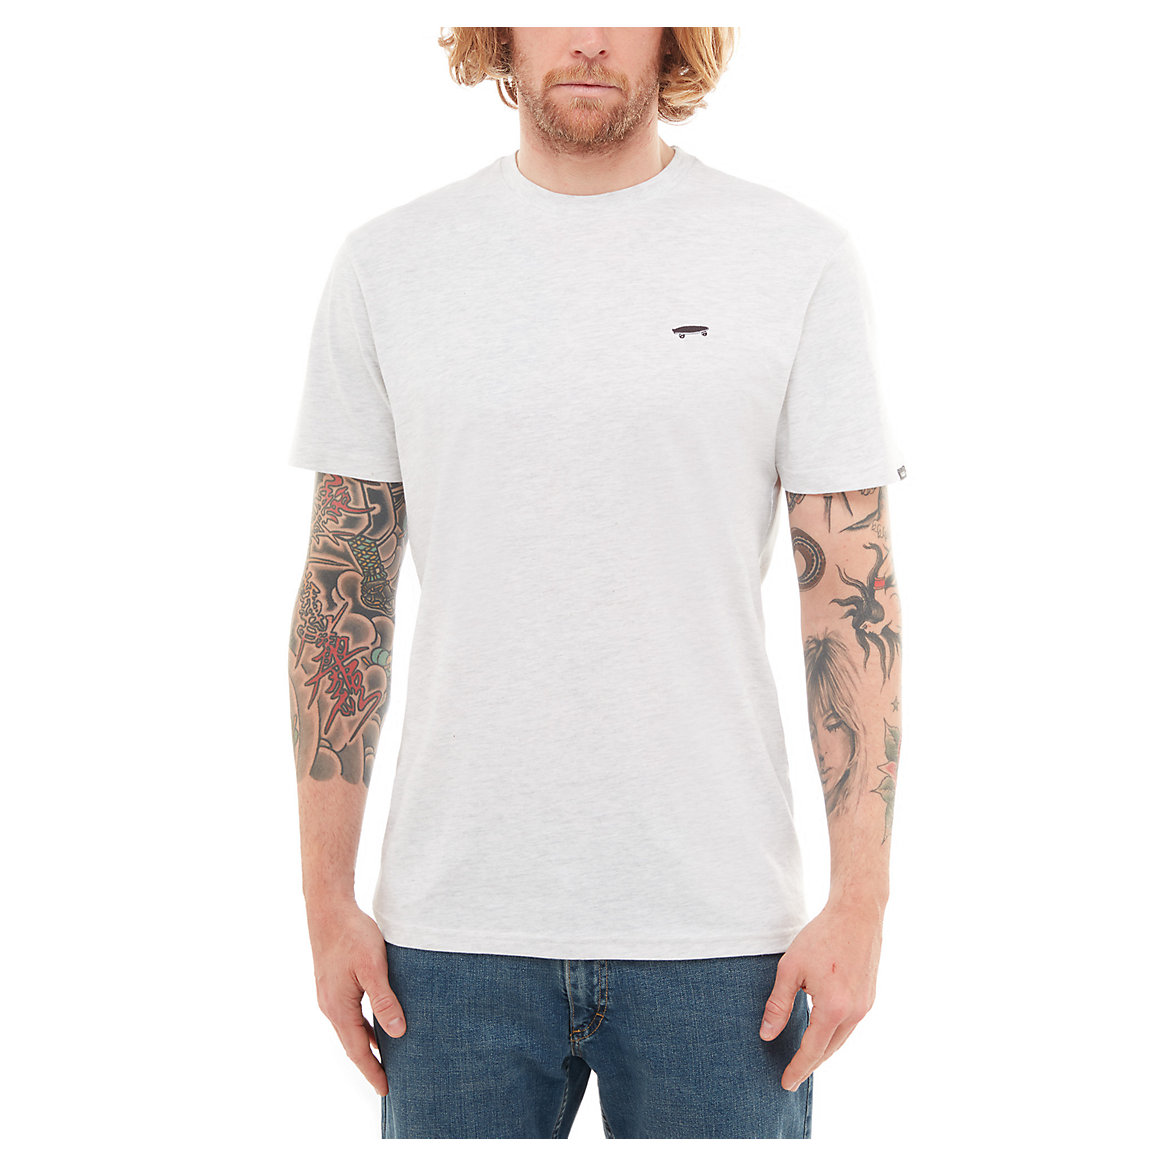 7b4adec72c Vans Skate Tee Short Sleeve - Ash Heather